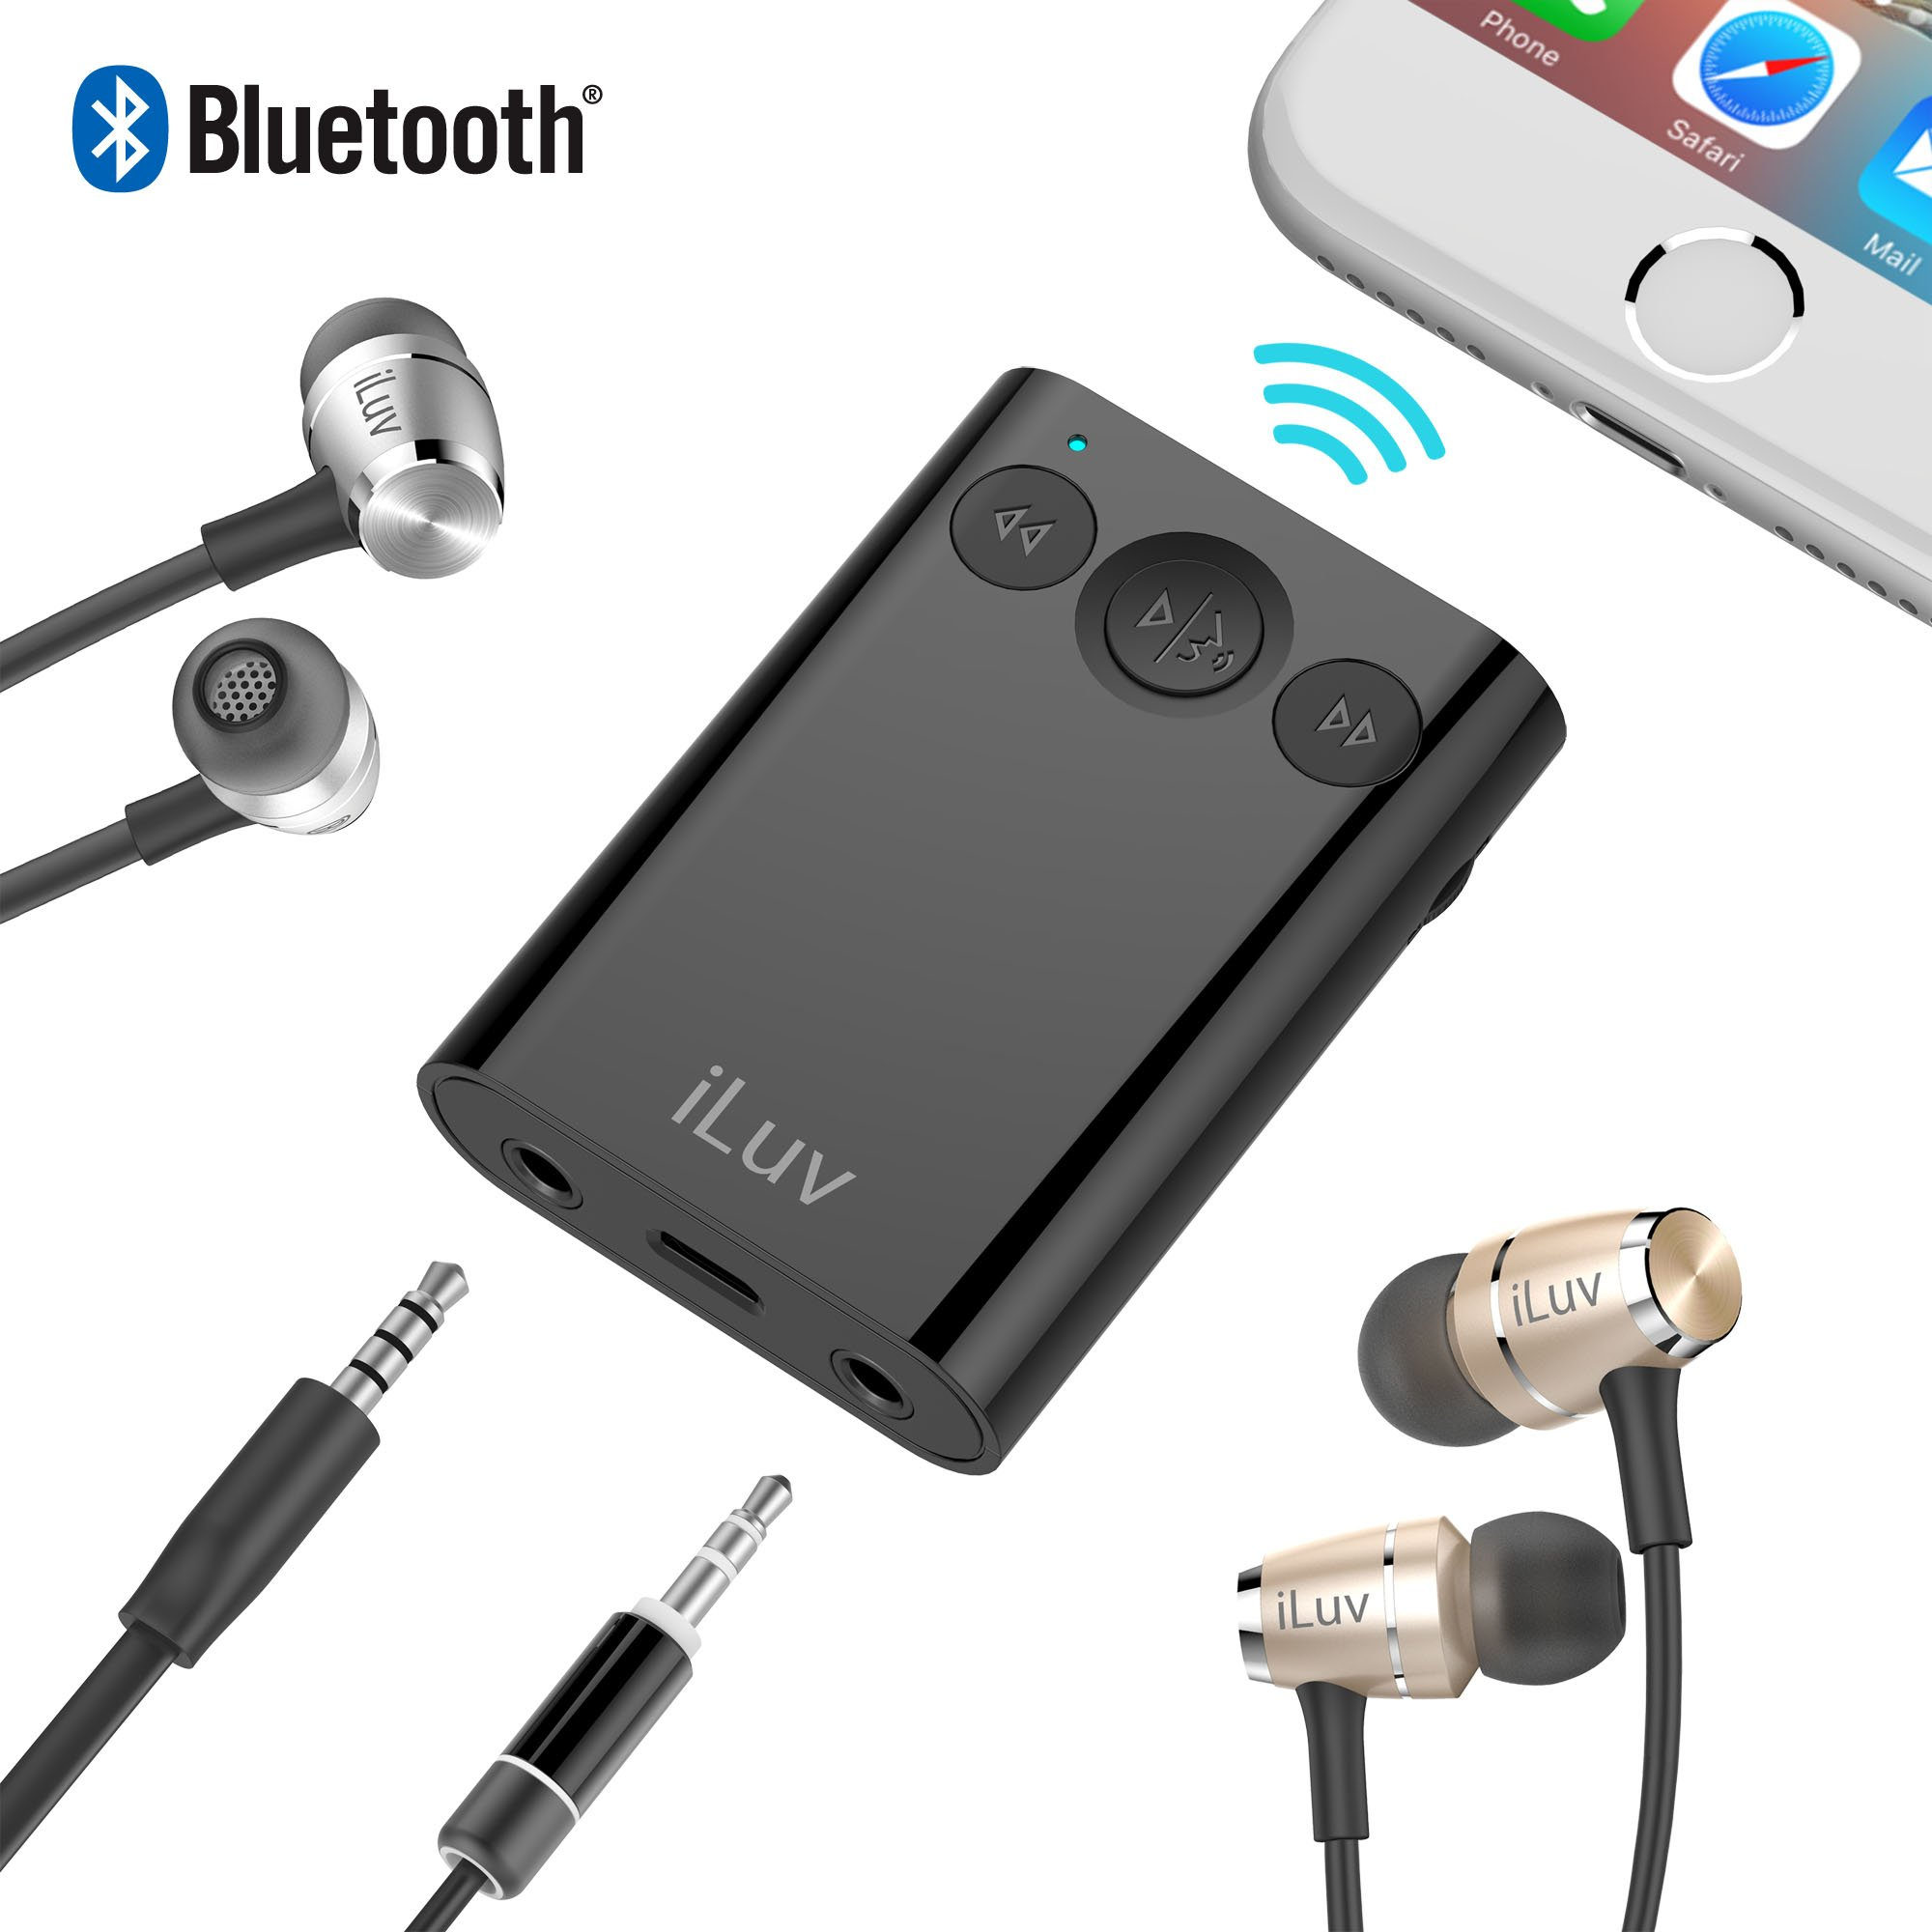 Bluetooth Stereo Receiver with Hands-free, 2-Way Splitter Adapter & Dual Volume Control for iPhone 7/7 Plus/8/8 Plus/X, Samsung GS7/S8, Smartphones and Home/Car Audio System